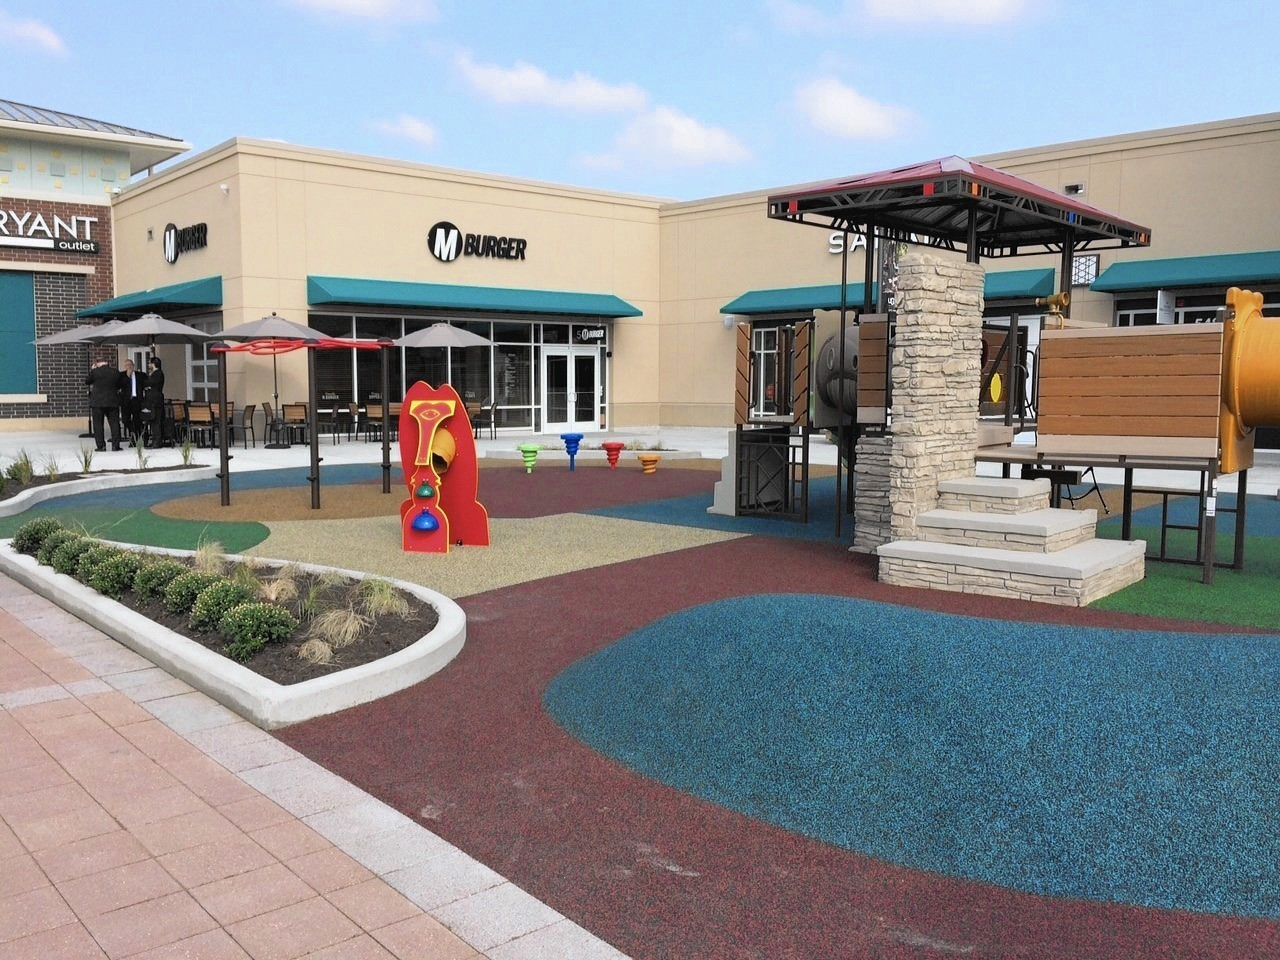 d1ce30f7b Major expansion at Aurora outlet mall opens - Aurora Beacon-News